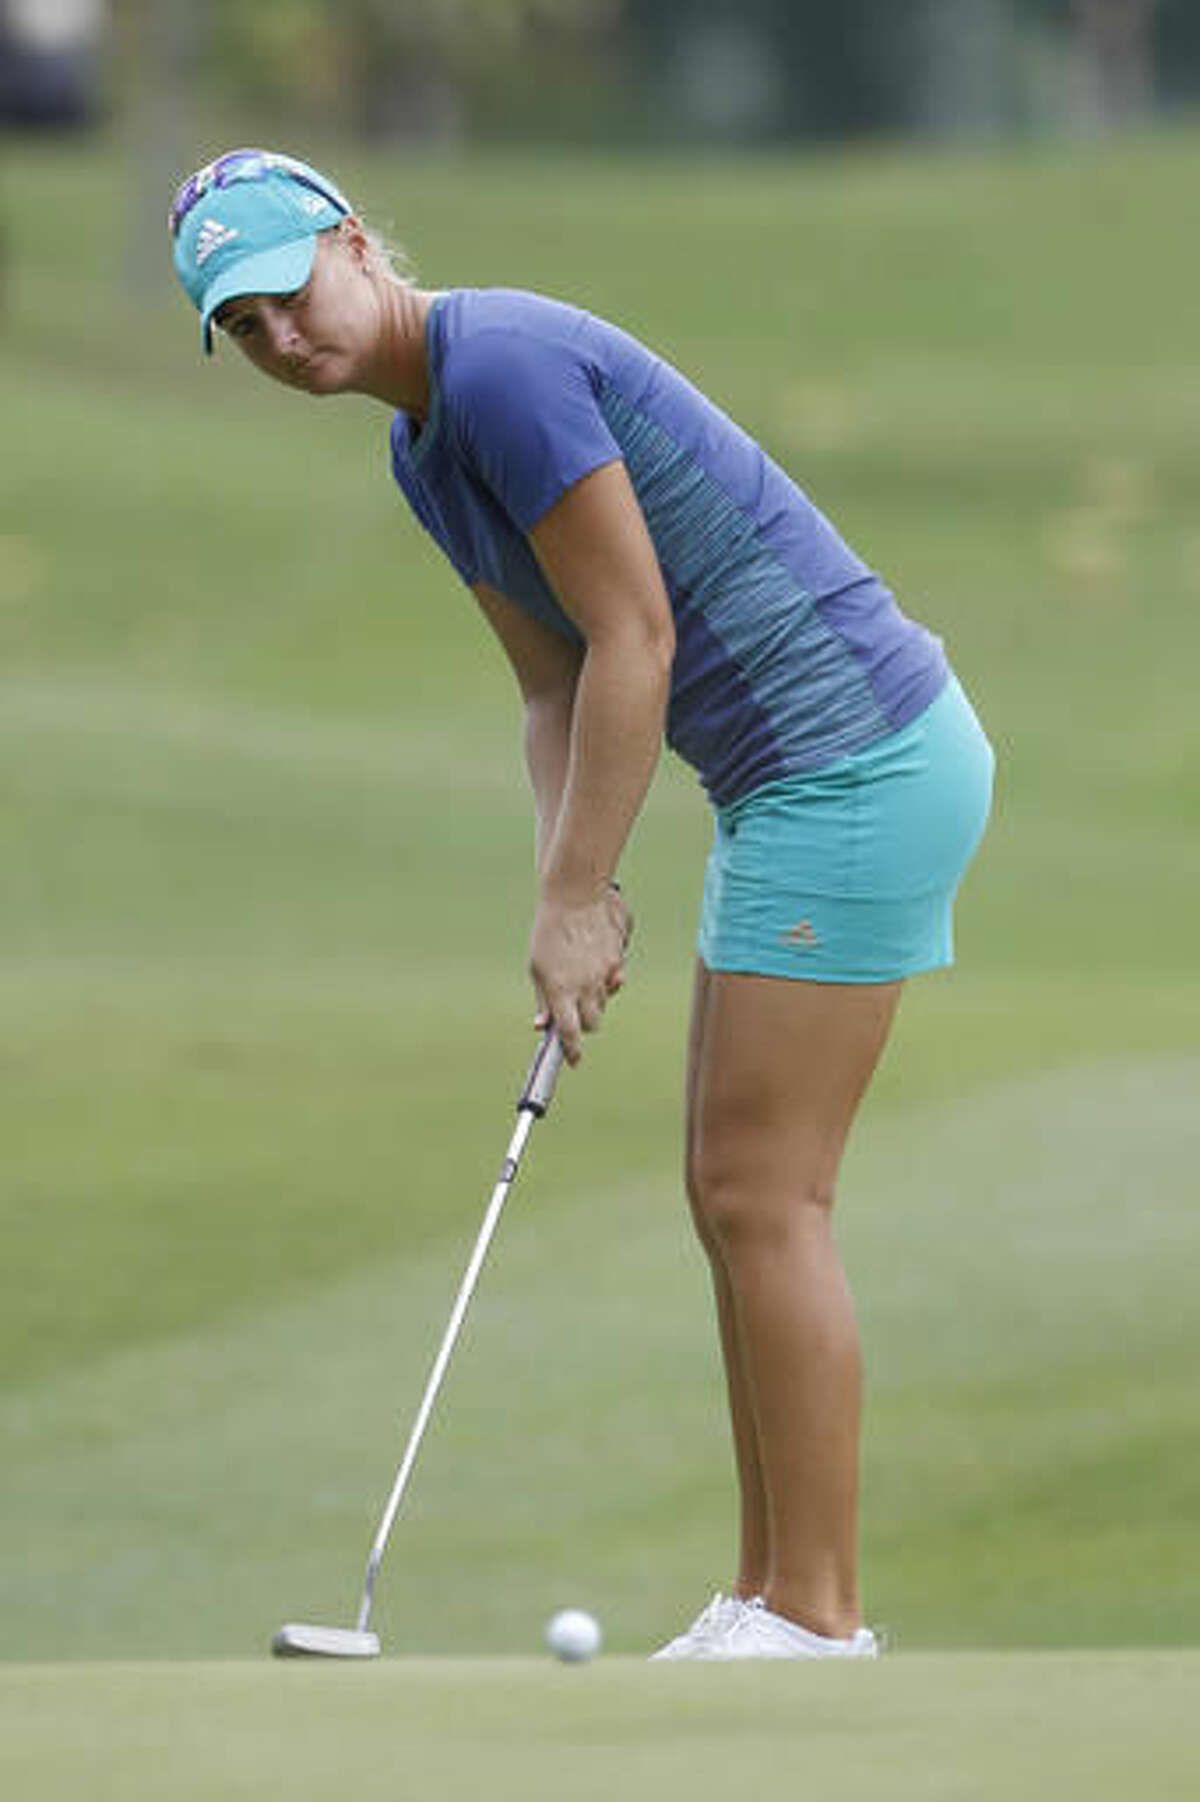 Anna Nordqvist of Sweden putts on the seventh green during the second round of the LPGA golf tournament at Tournament Players Club in Kuala Lumpur, Malaysia, Friday, Oct. 28, 2016. (AP Photo/Joshua Paul)